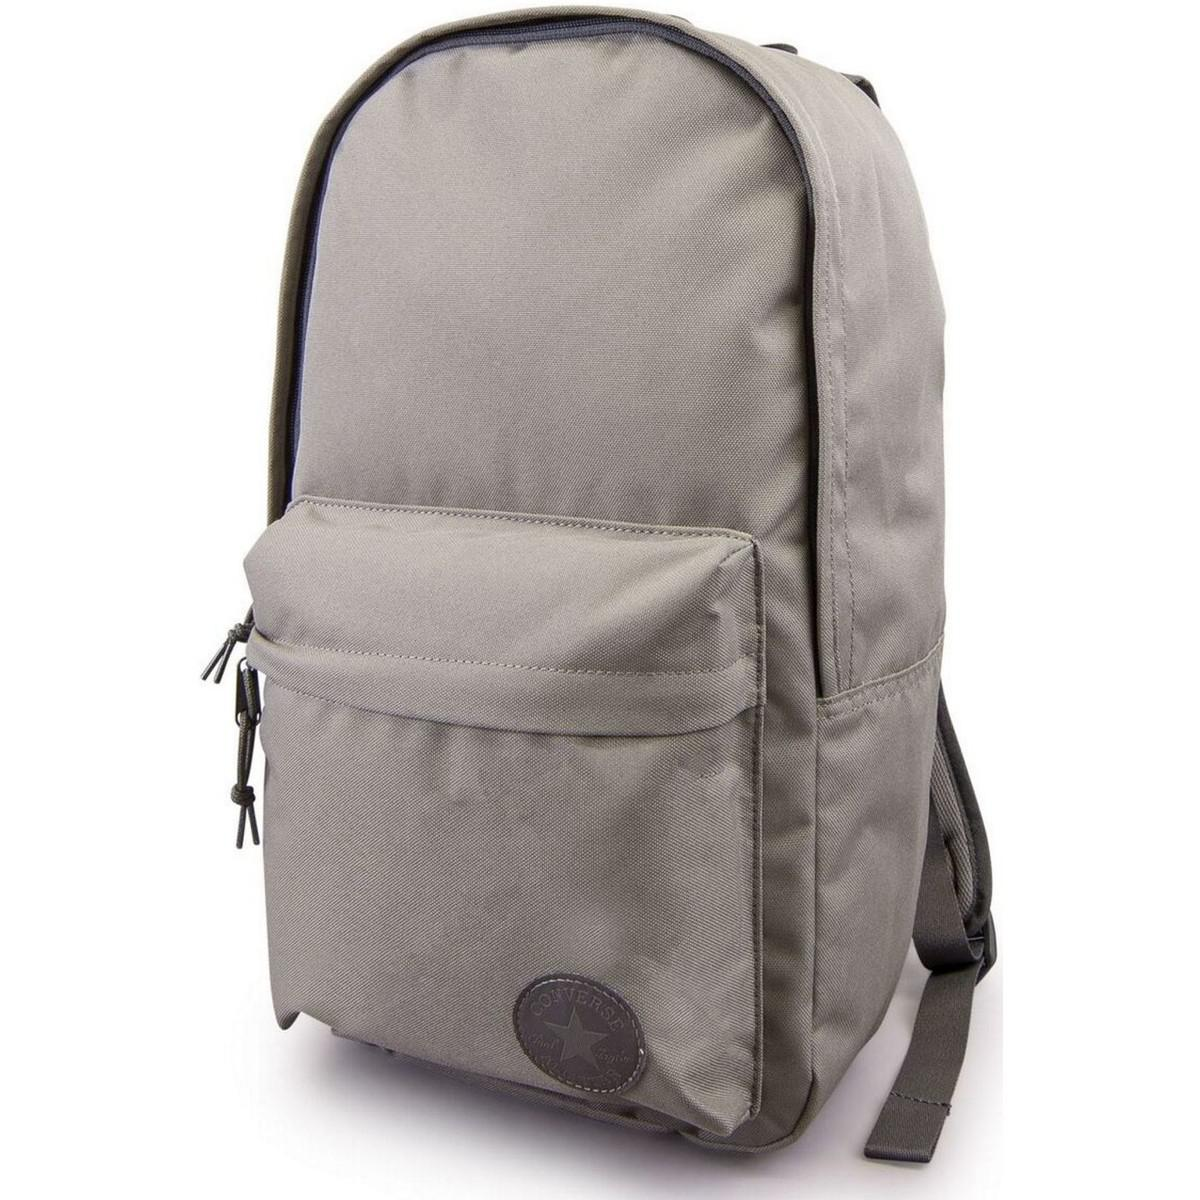 37b0d6b102d7 Converse Edc Poly Backpack - Dark Stucco   River Rock Men s Backpack ...